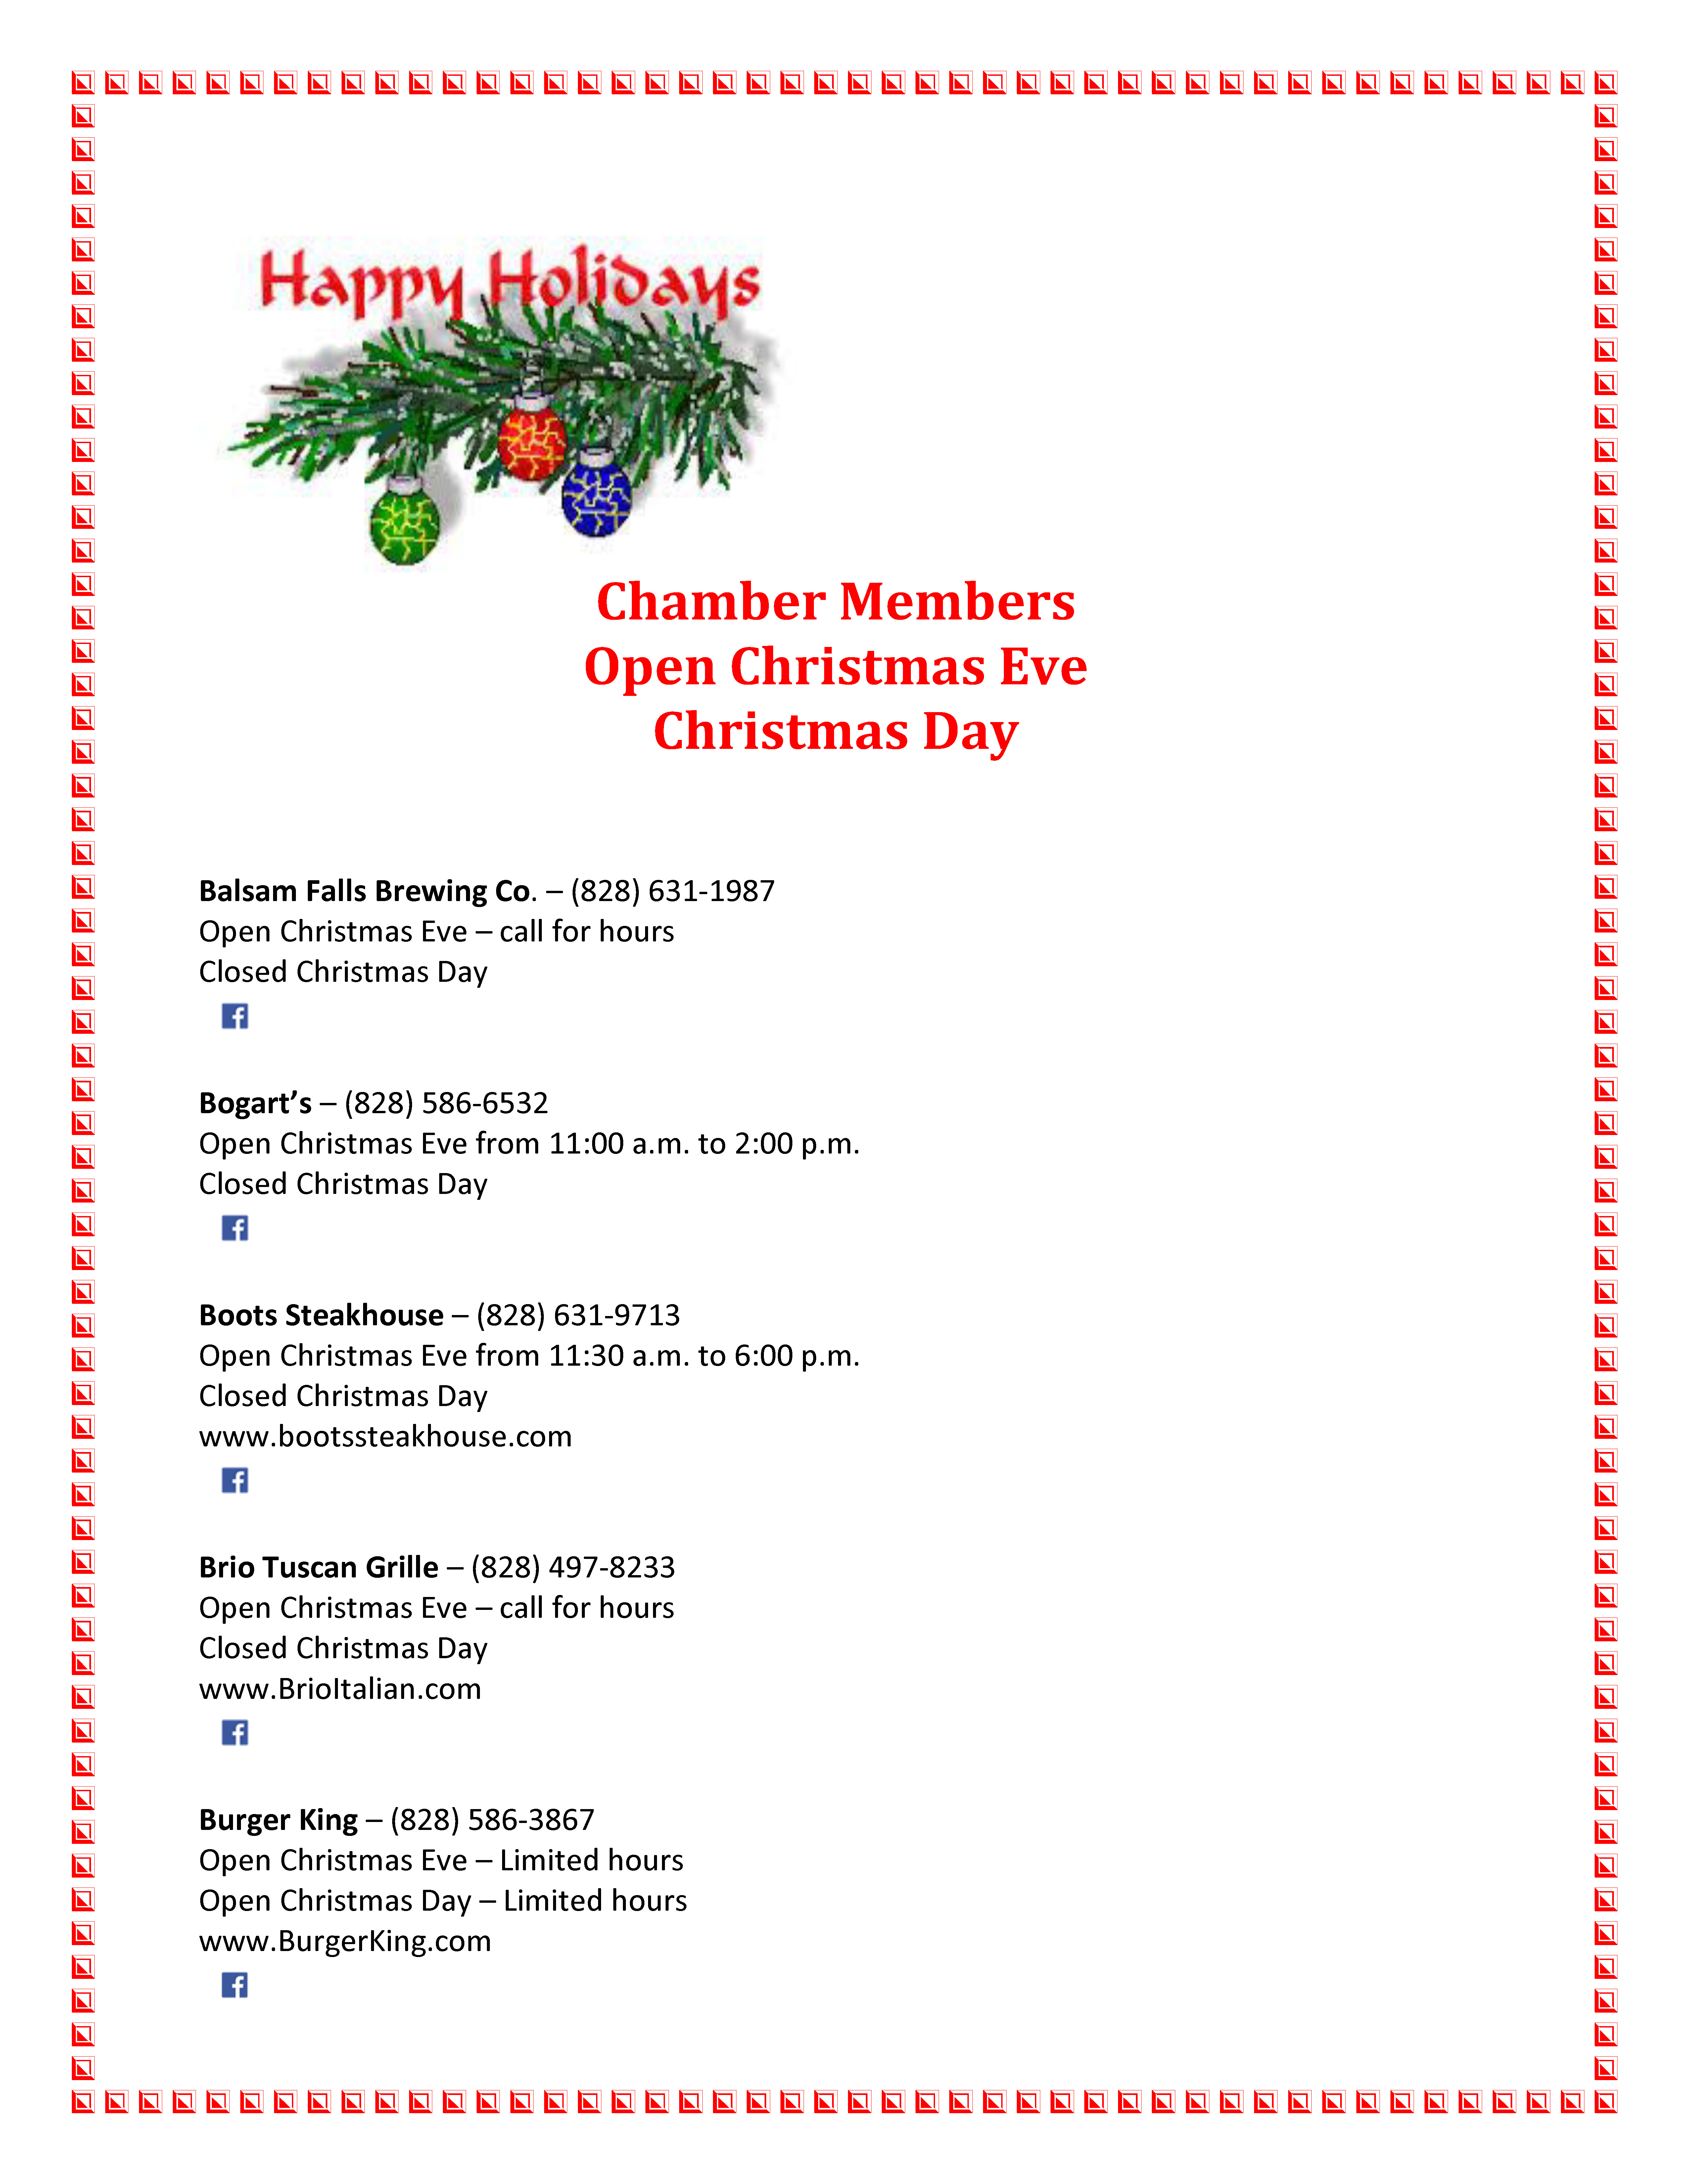 Restaurants serving Christmas Eve and Christmas Day meals - Jackson ...